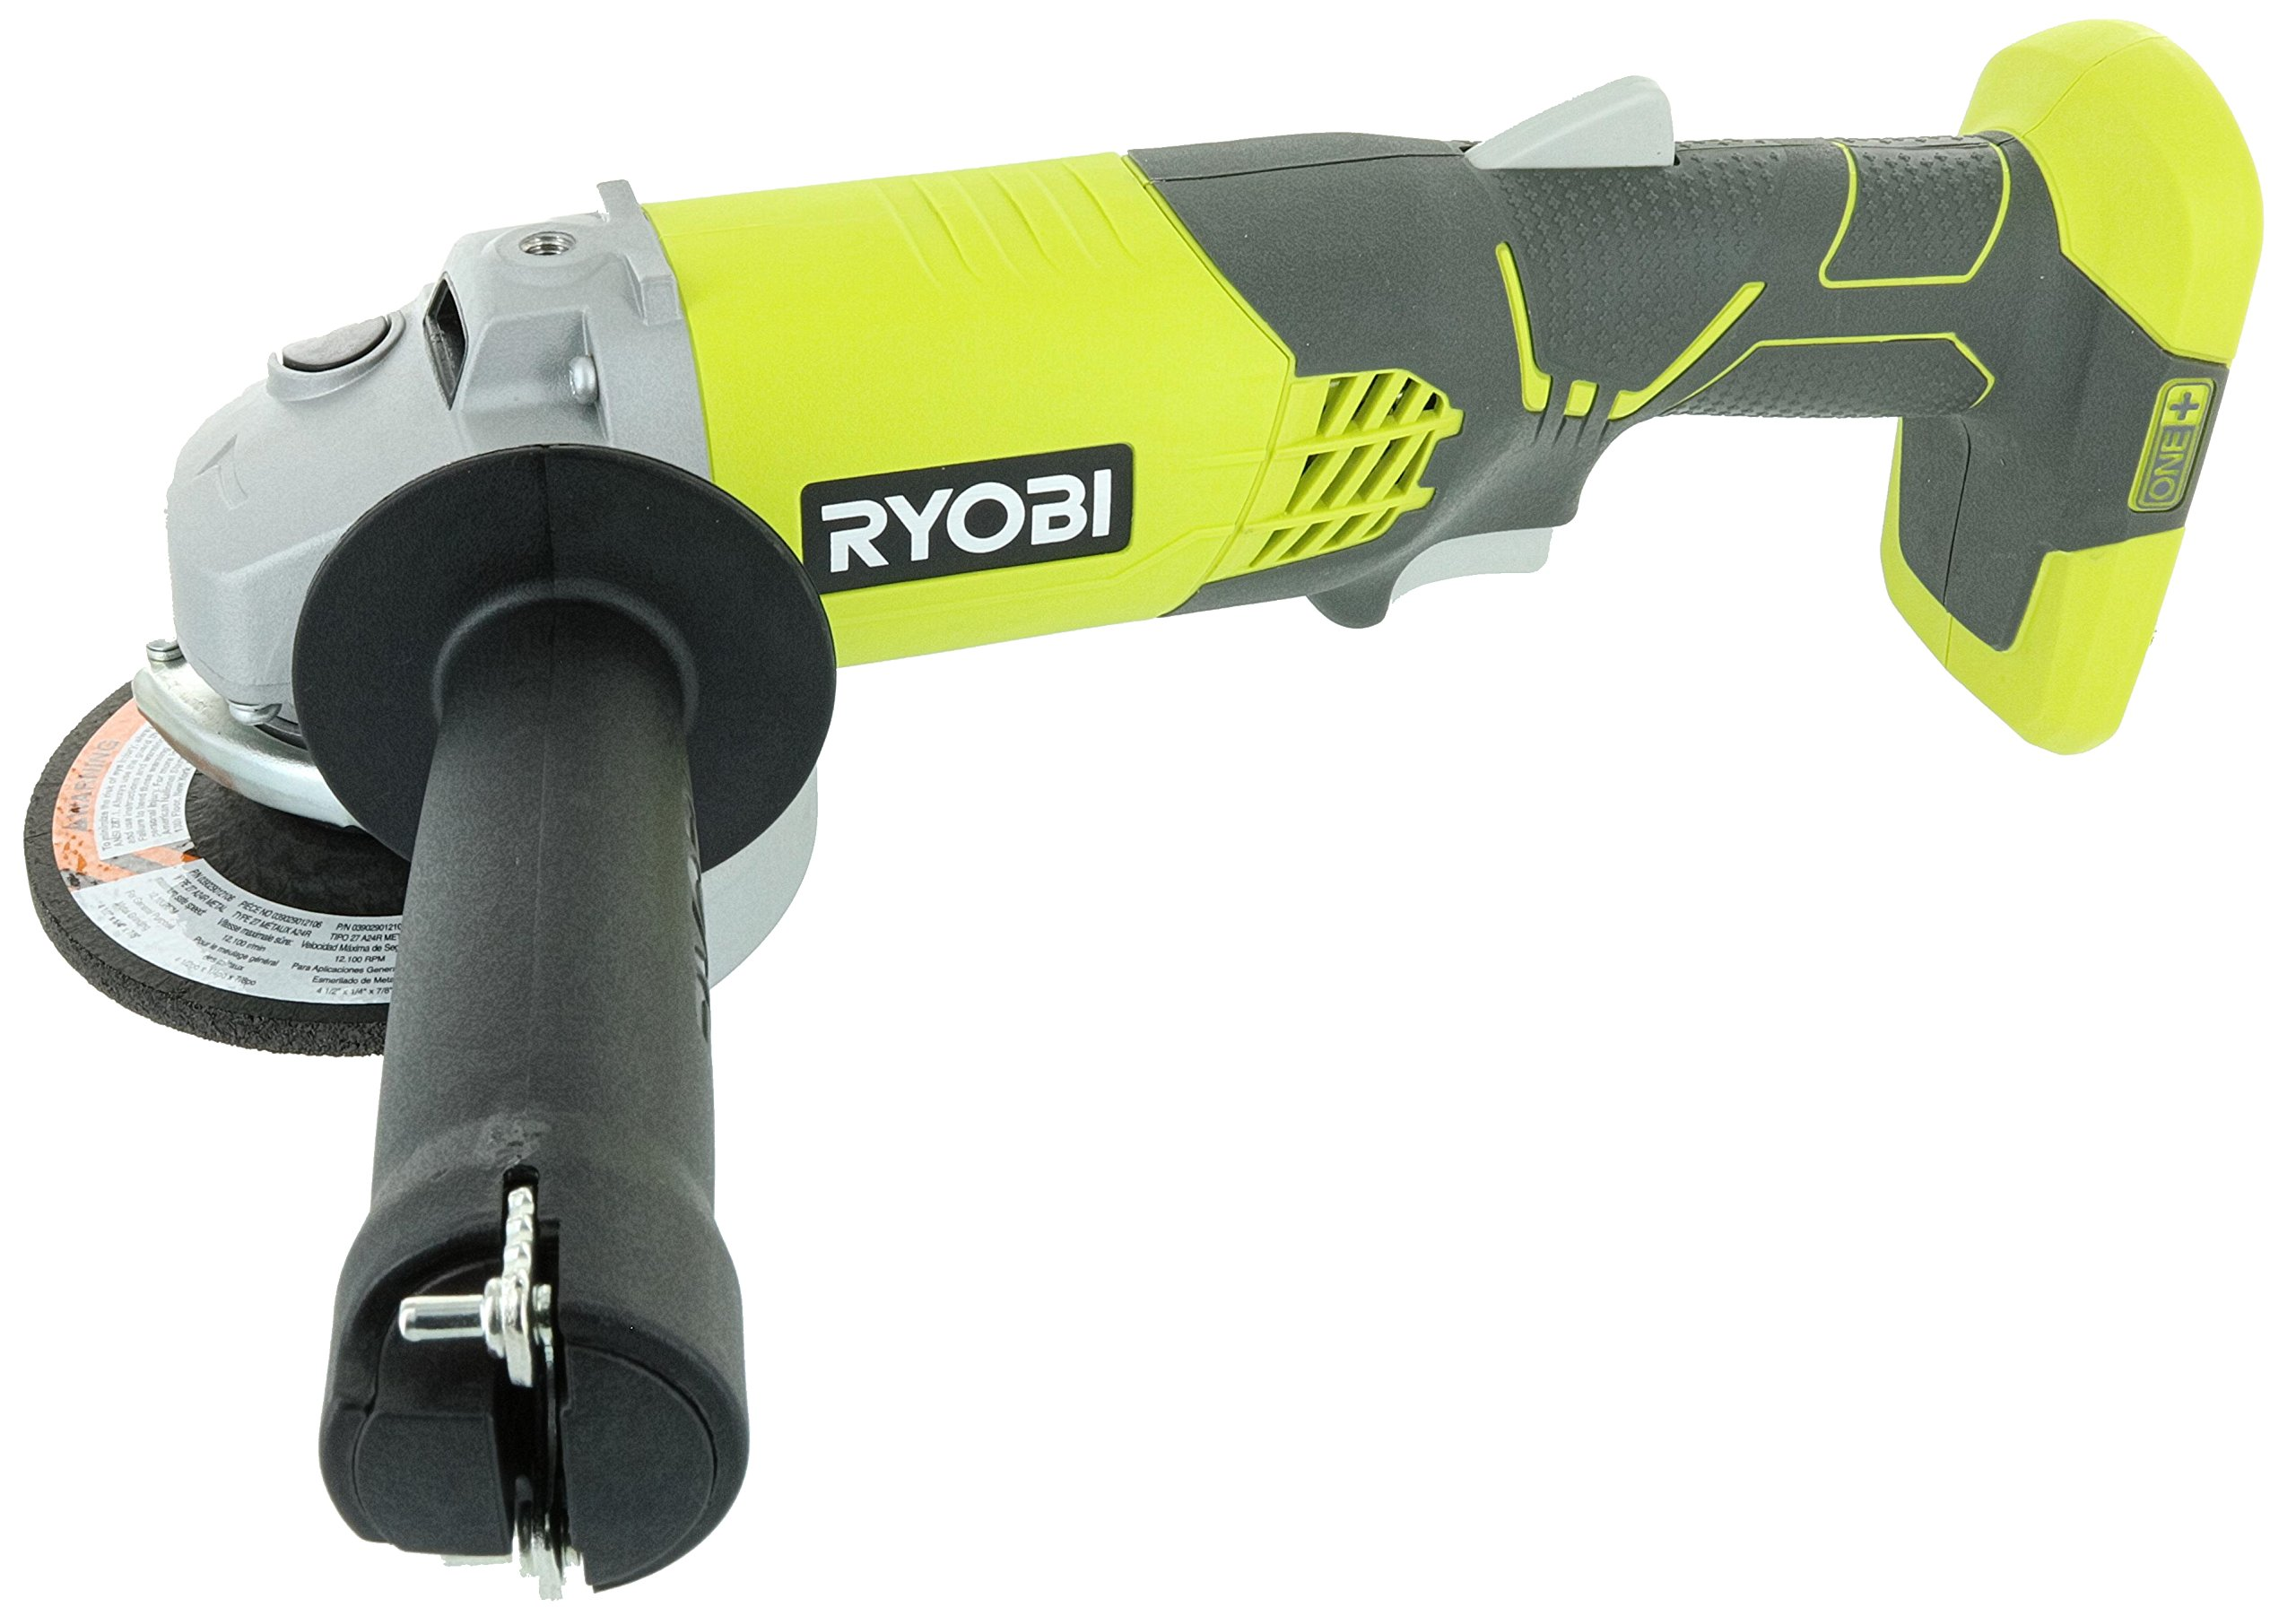 Ryobi P421 6500 RPM 4 1/2 Inch 18-Volt One+ Lithium Ion-Powered Angle Grinder